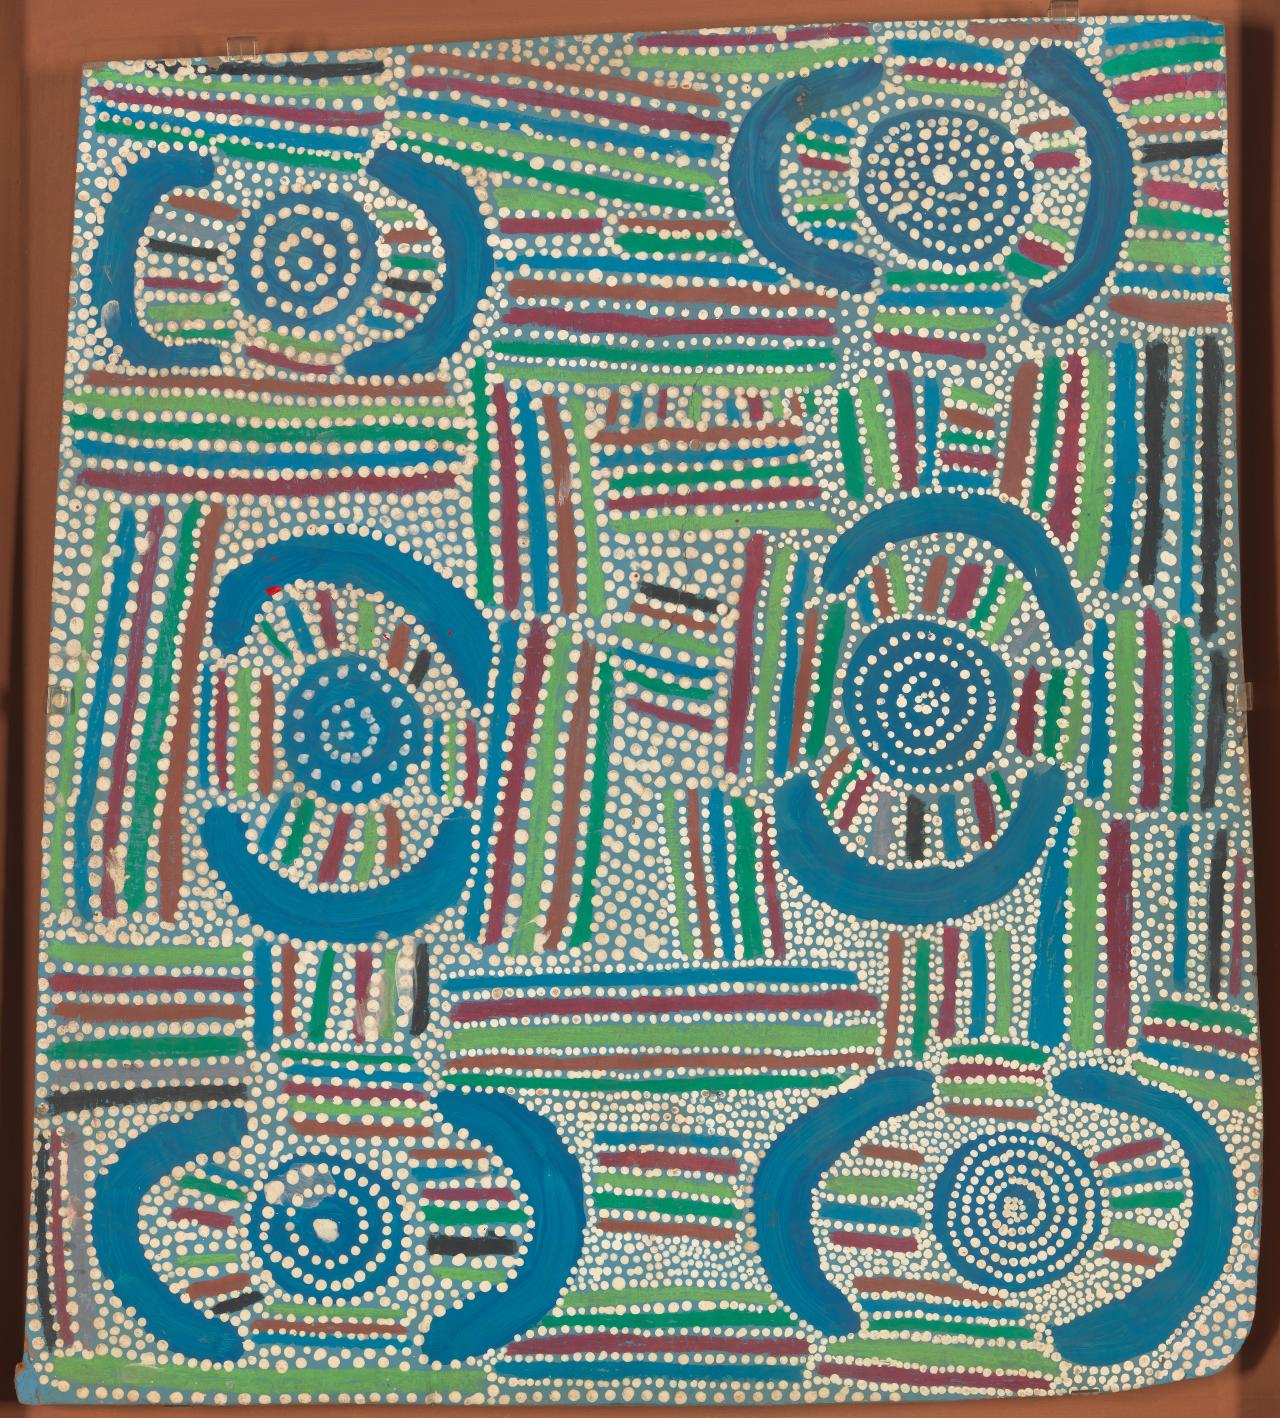 Wati Kujarra Jukurrpa (Two men Dreaming)